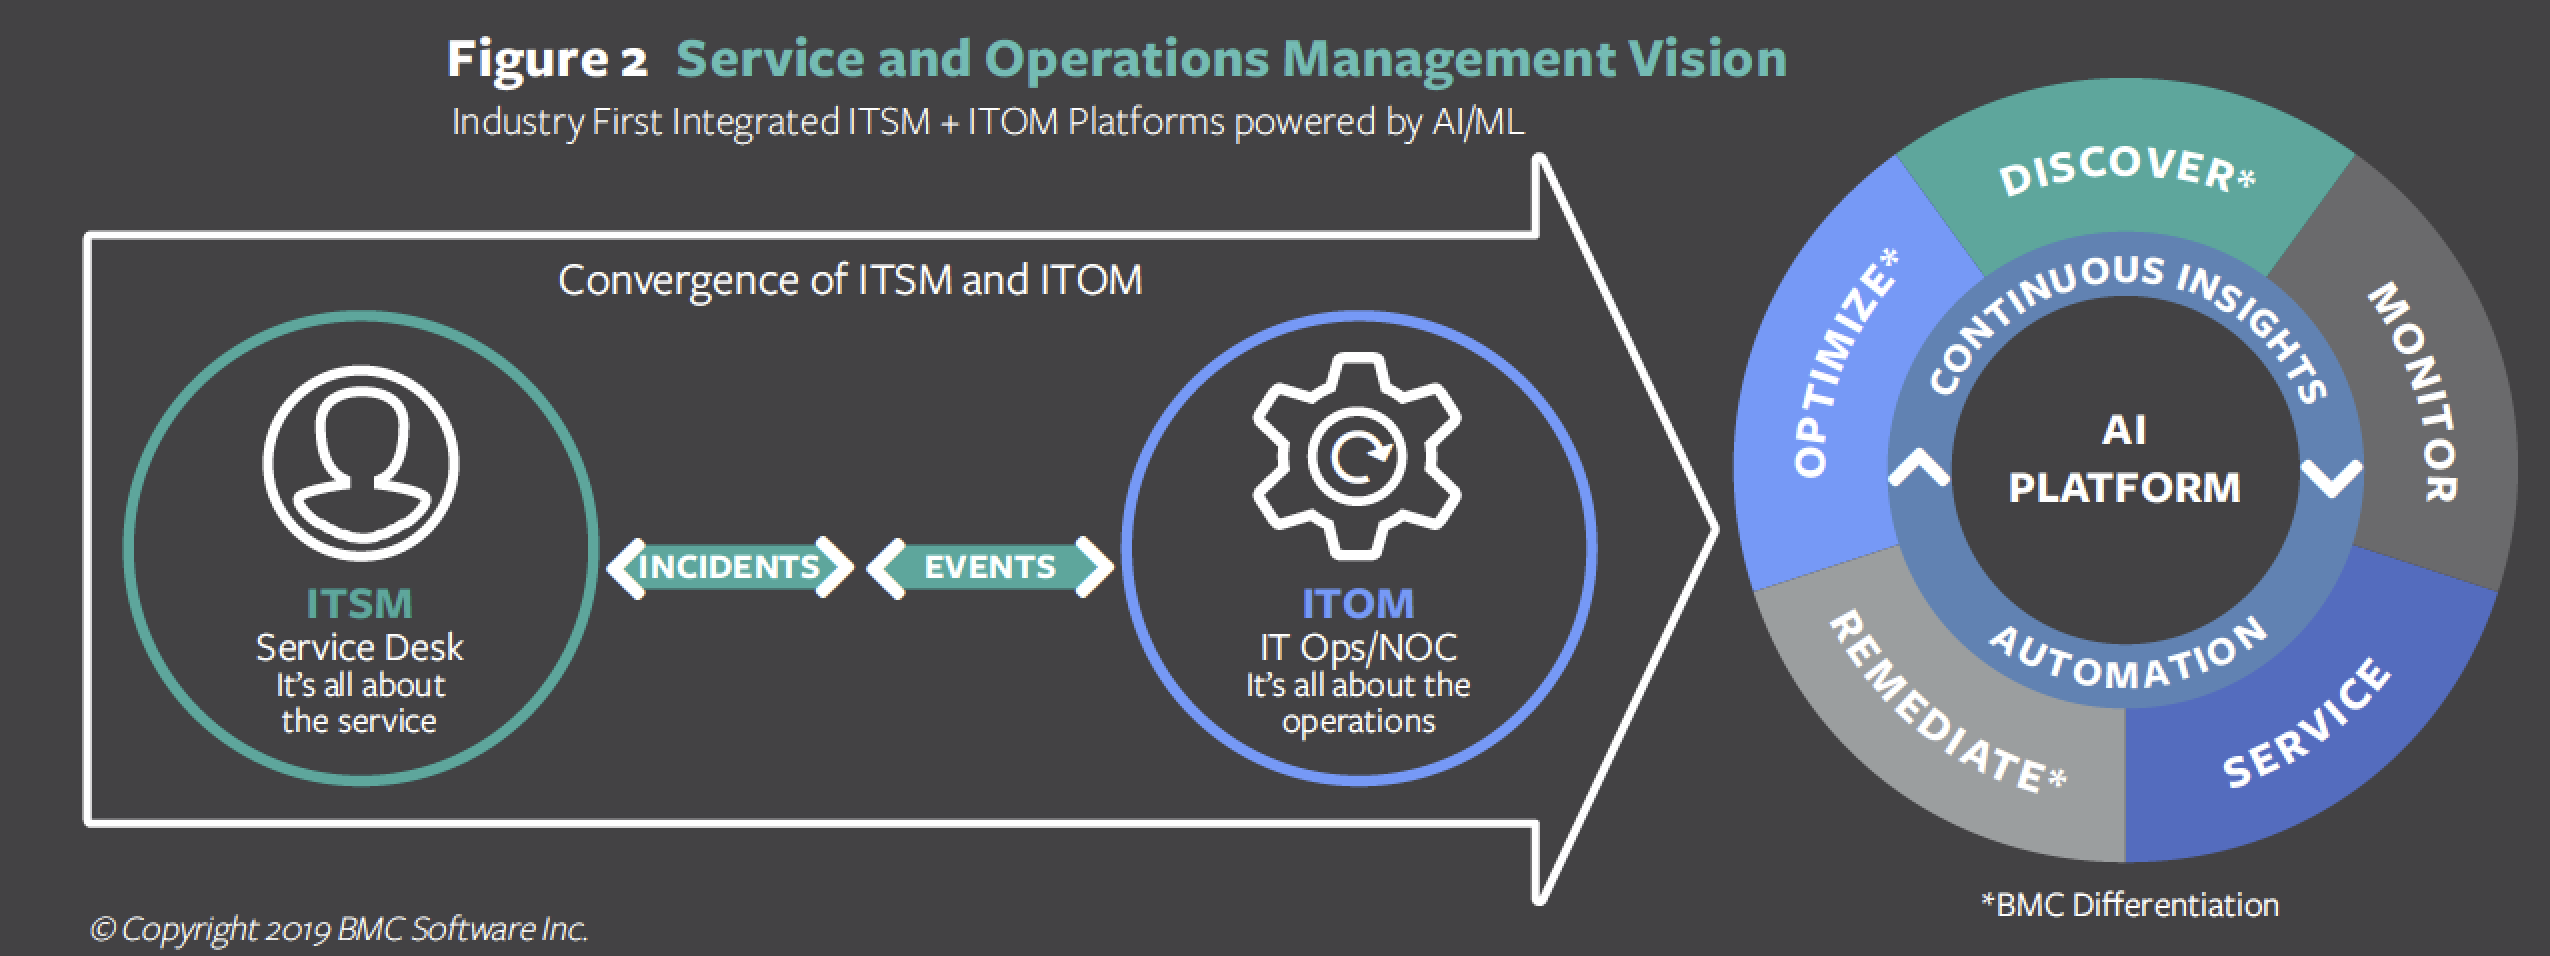 Figure 2. Service and Operations Management Vision